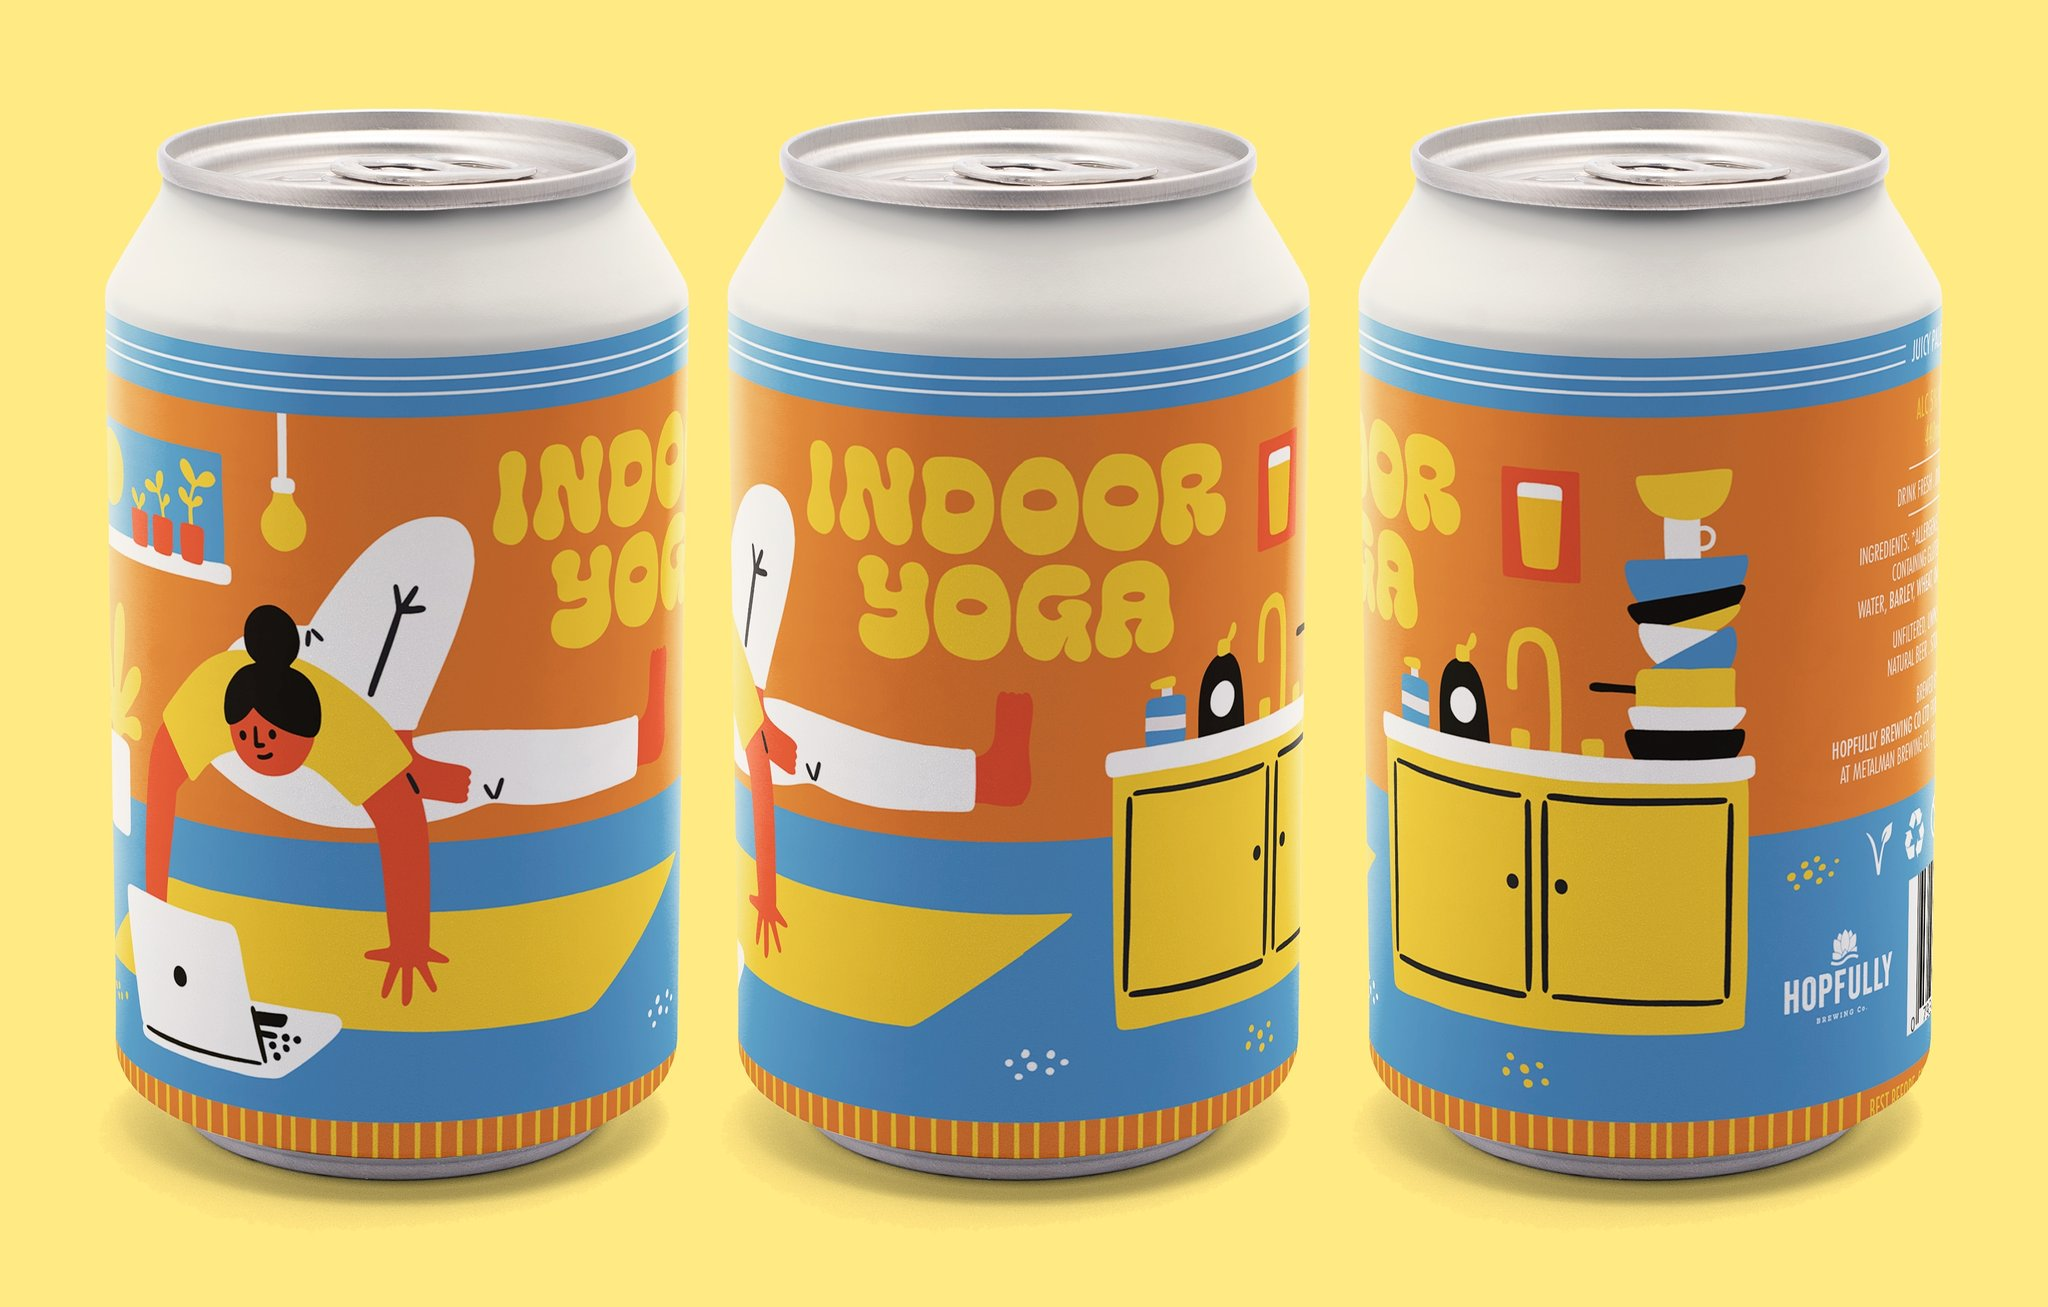 indoor yoga hopfully brewing co father's day gift